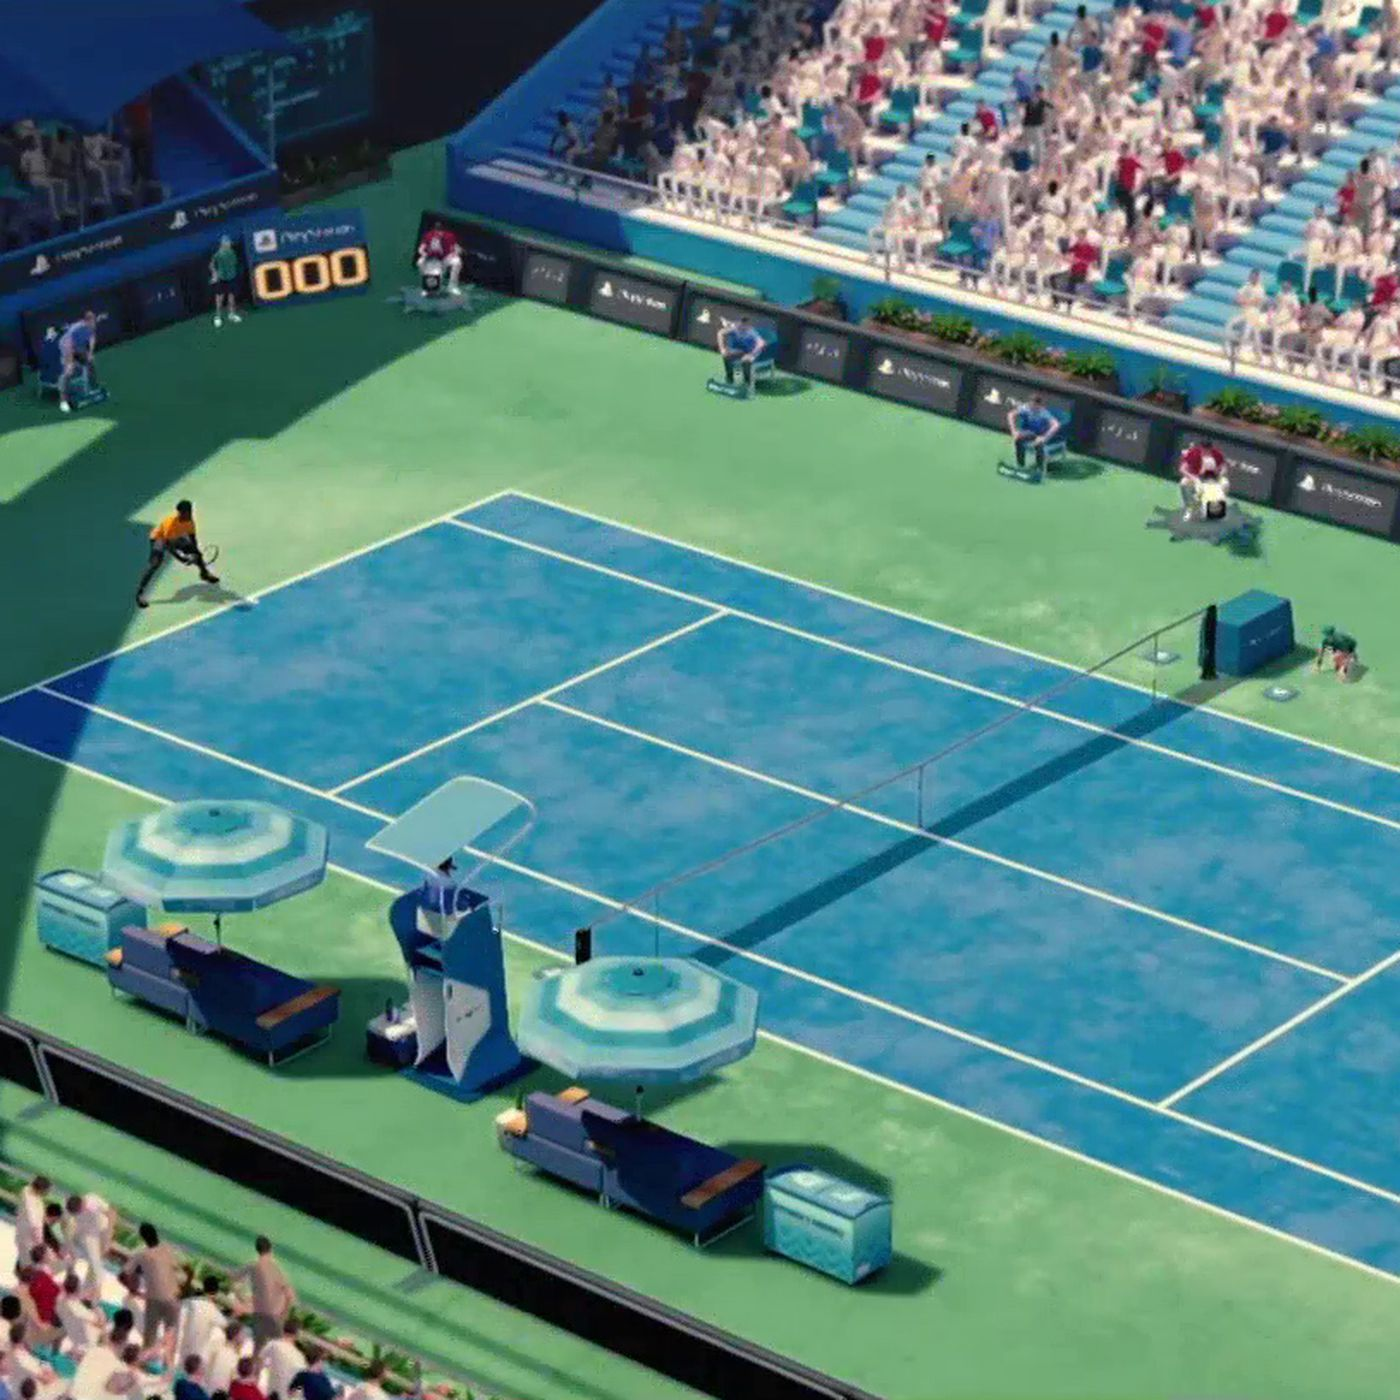 f2a4ae03b6d3fe Tennis World Tour coming to PS4 in 2018 - Polygon